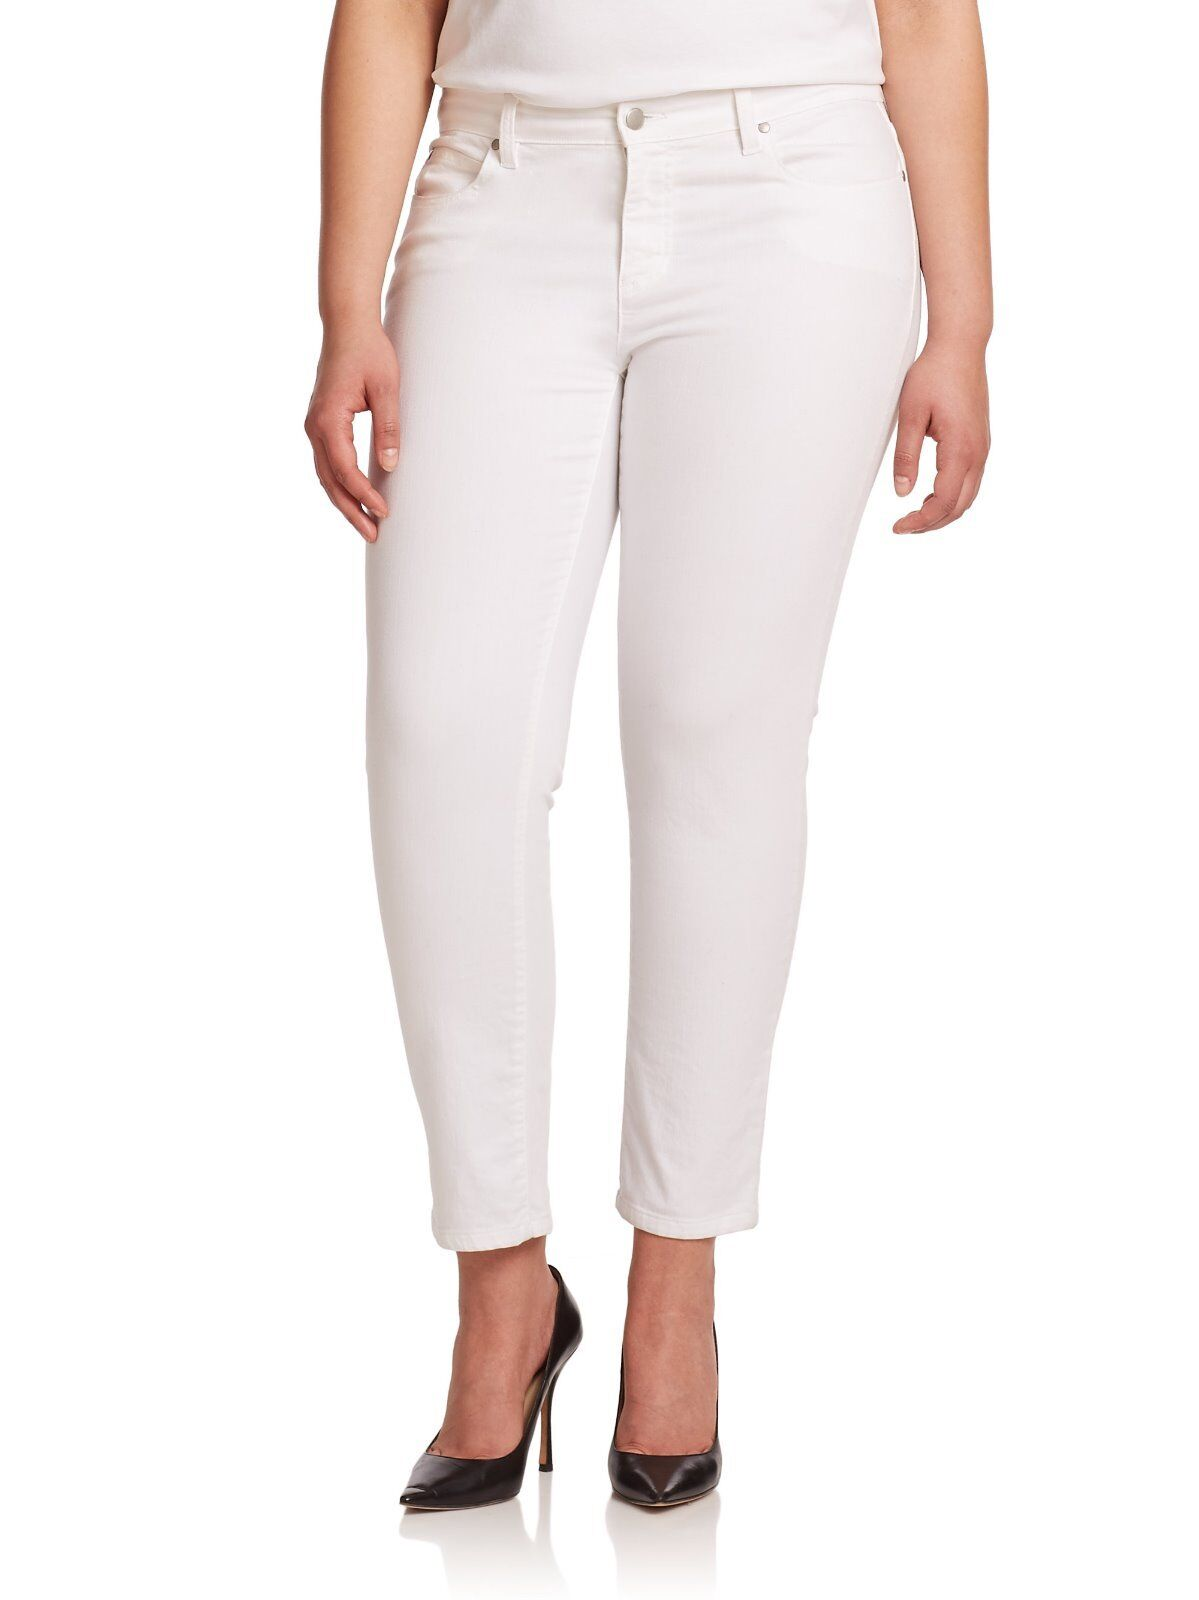 NWT   178 EILEEN FISHER NEW Ivory Textured Low-Rise Skinny Ankle Jeans.SZ 14